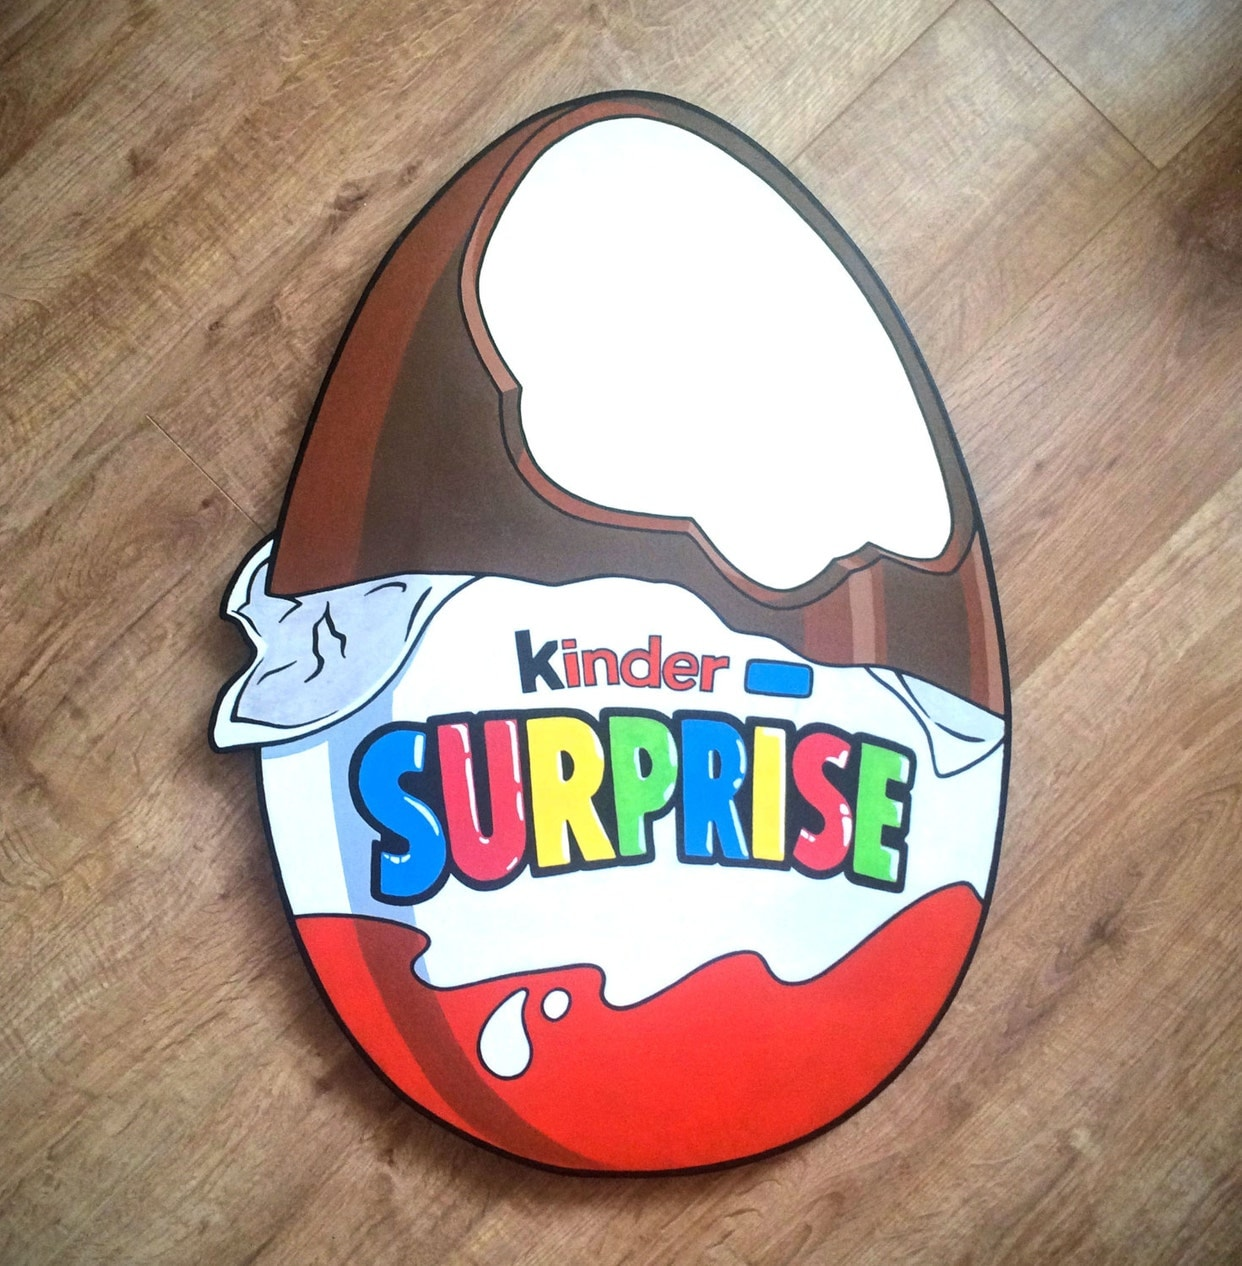 Giant Kinder Surprise wooden wall plaque